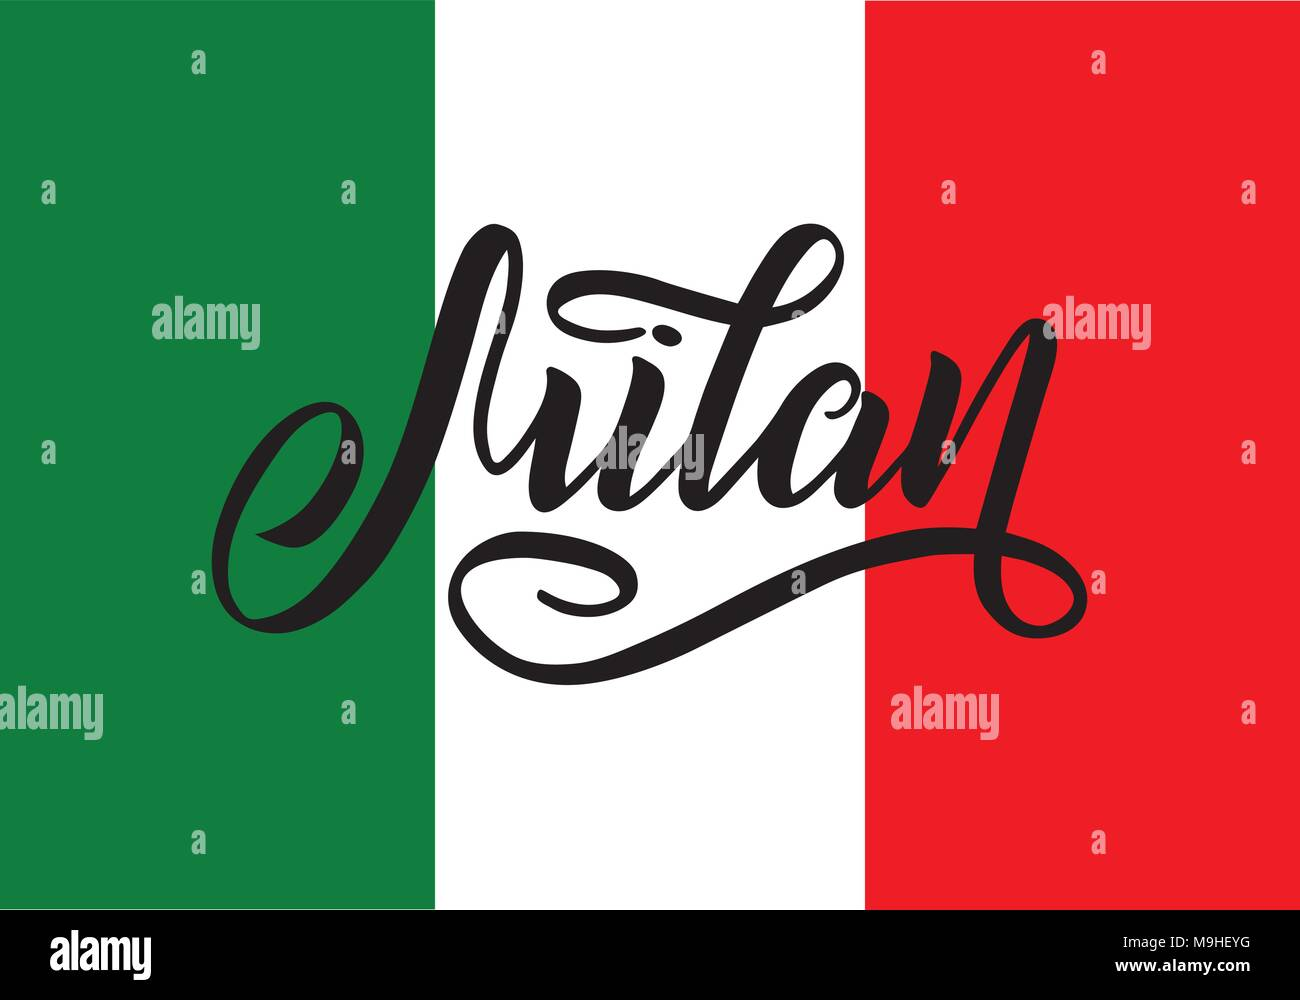 Handwritten inscription Milan and colors of the national flag of Italy on background. Hand drawn lettering. Calligraphic element for your design. Vector illustration - Stock Vector